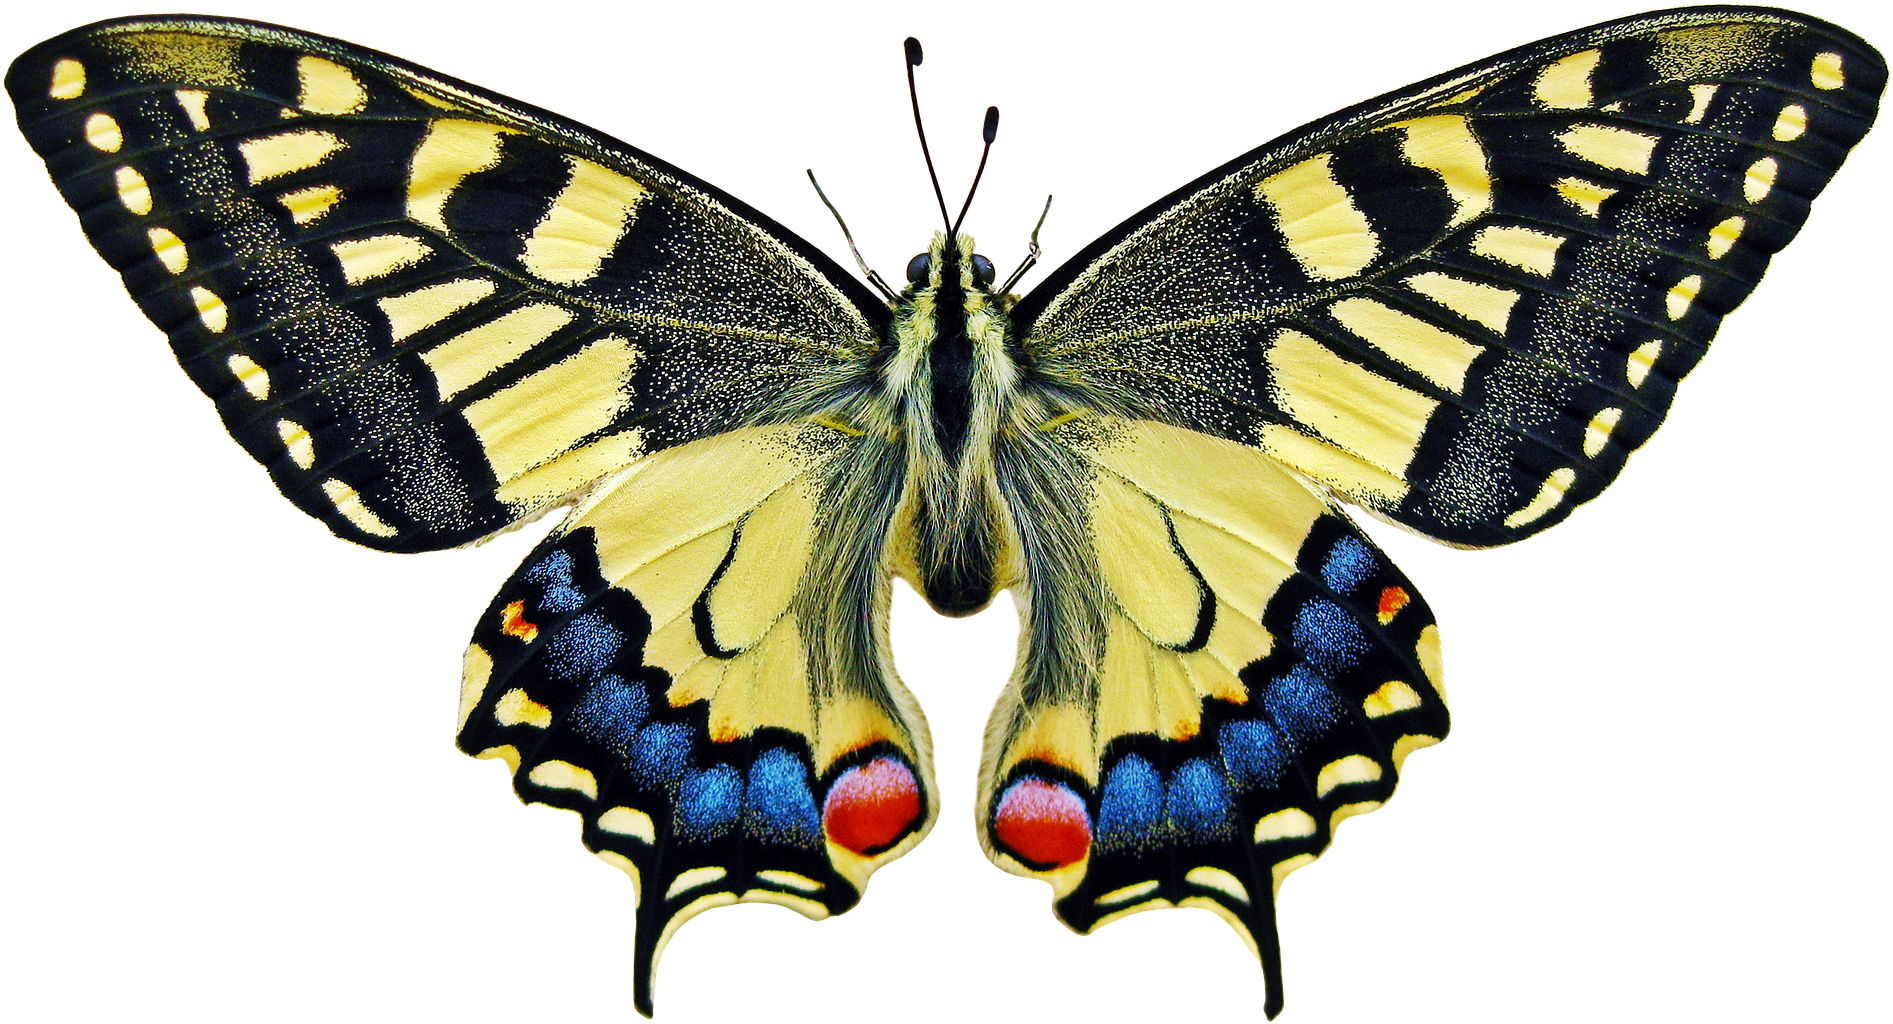 Download Anise Swallowtail Butterfly Meaning - Full Size PNG Image